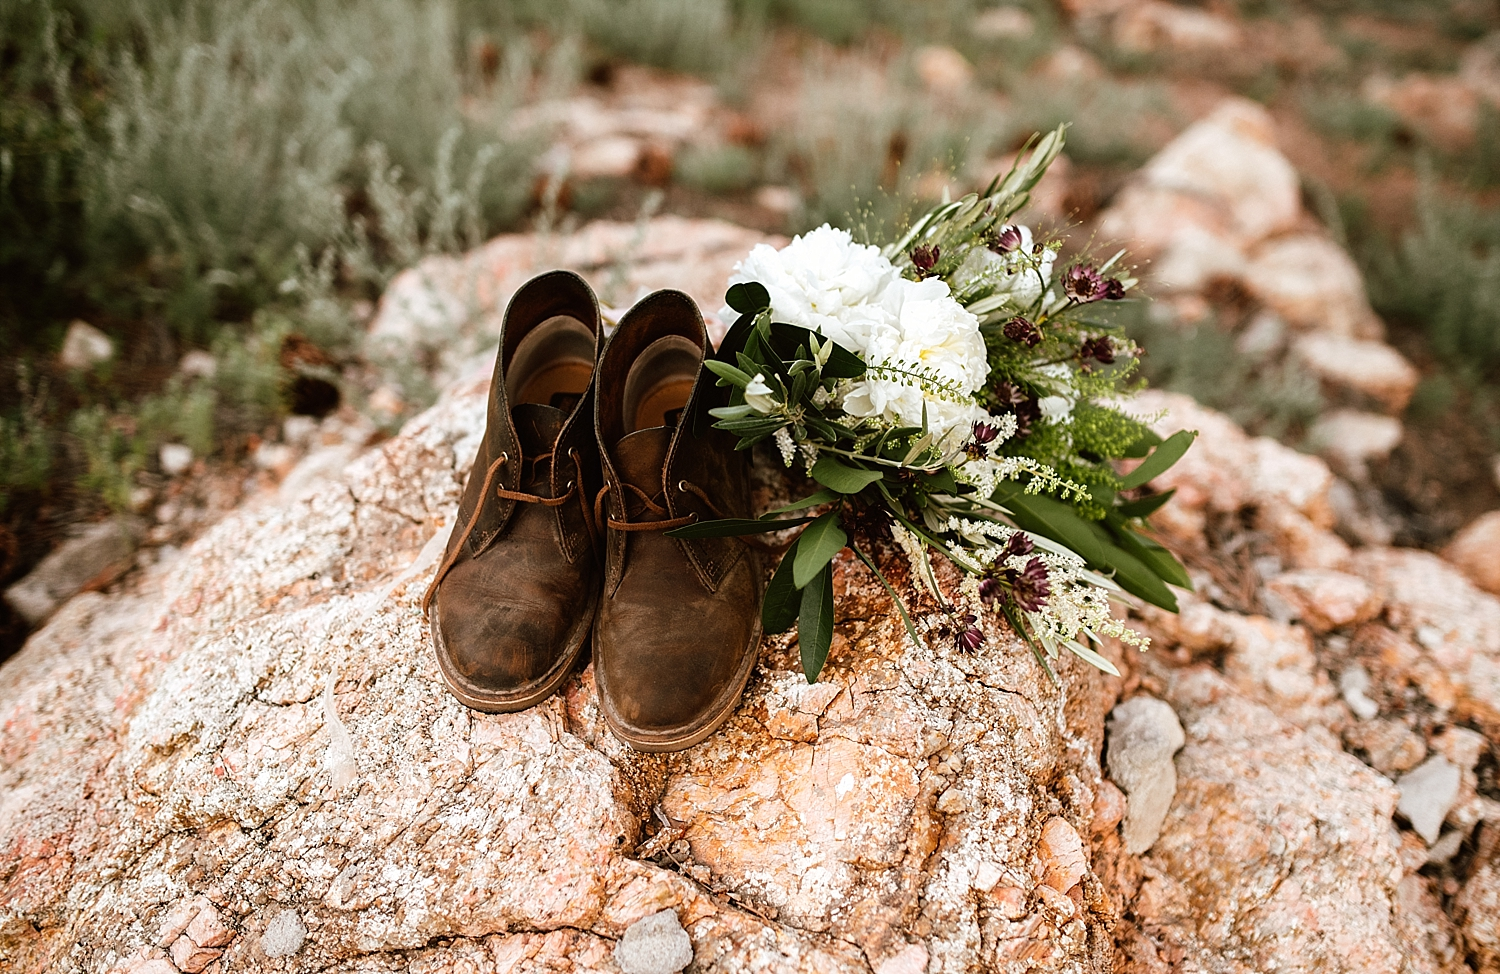 These hipster hiking boots are the perfect wedding shoes for a mountain elopement! And I love that white rose bouquet! | Mountain elopement photos by Rocky Mountain National Park wedding photographer, Maddie Mae.